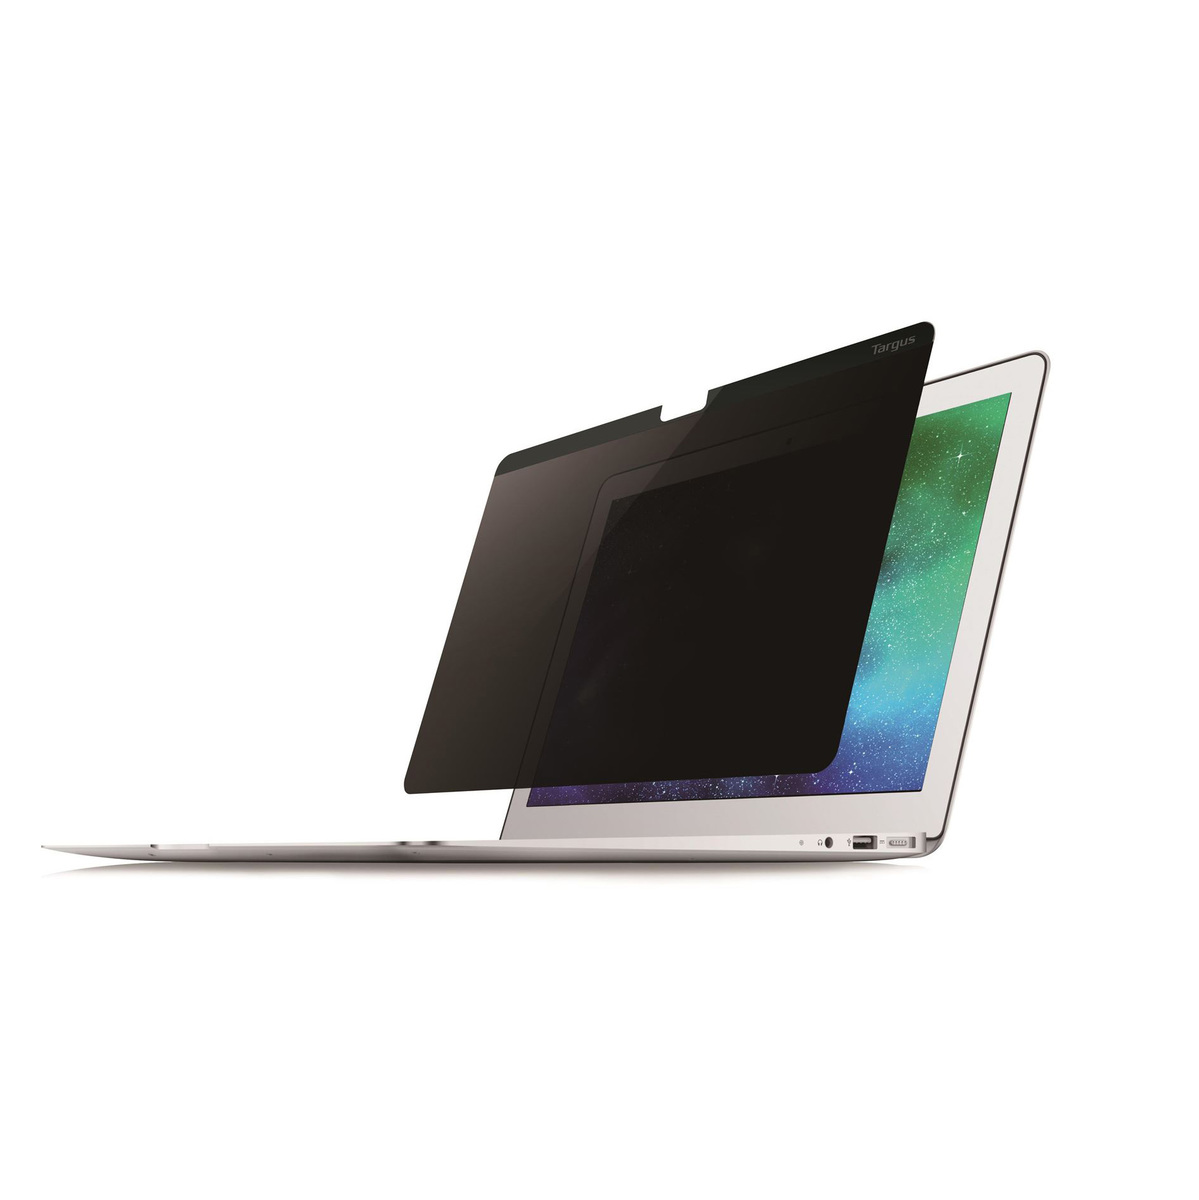 ASM12MBAP-60 MAGNETIC PRIVACY SCREEN FOR APPLE MACBOOK 12""